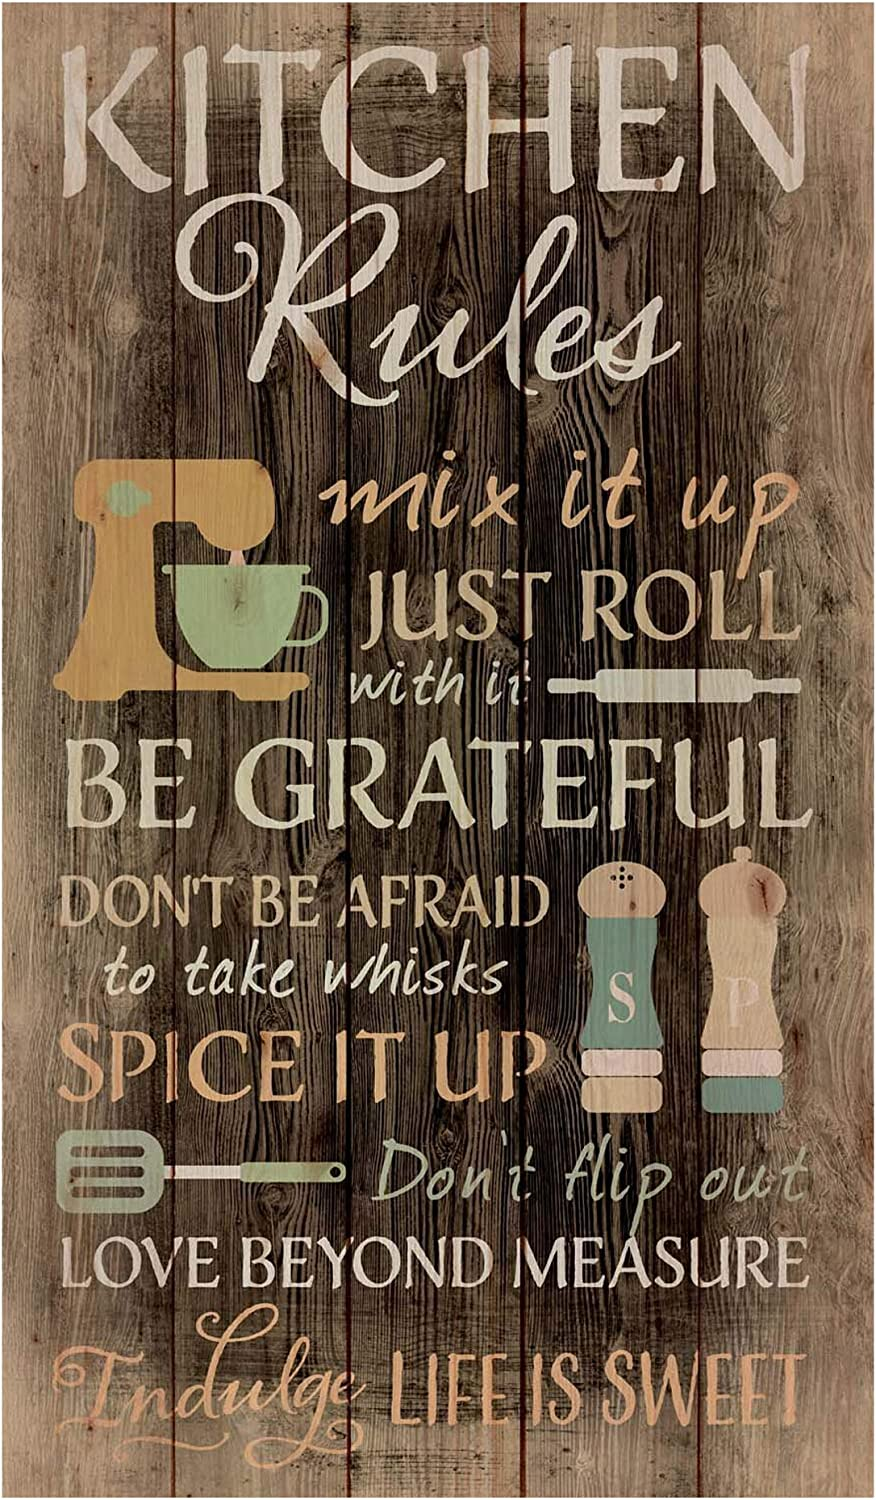 P. Graham Dunn Save money Kitchen Shipping included Rules Distressed Pallet 24 Wall Wood x 14